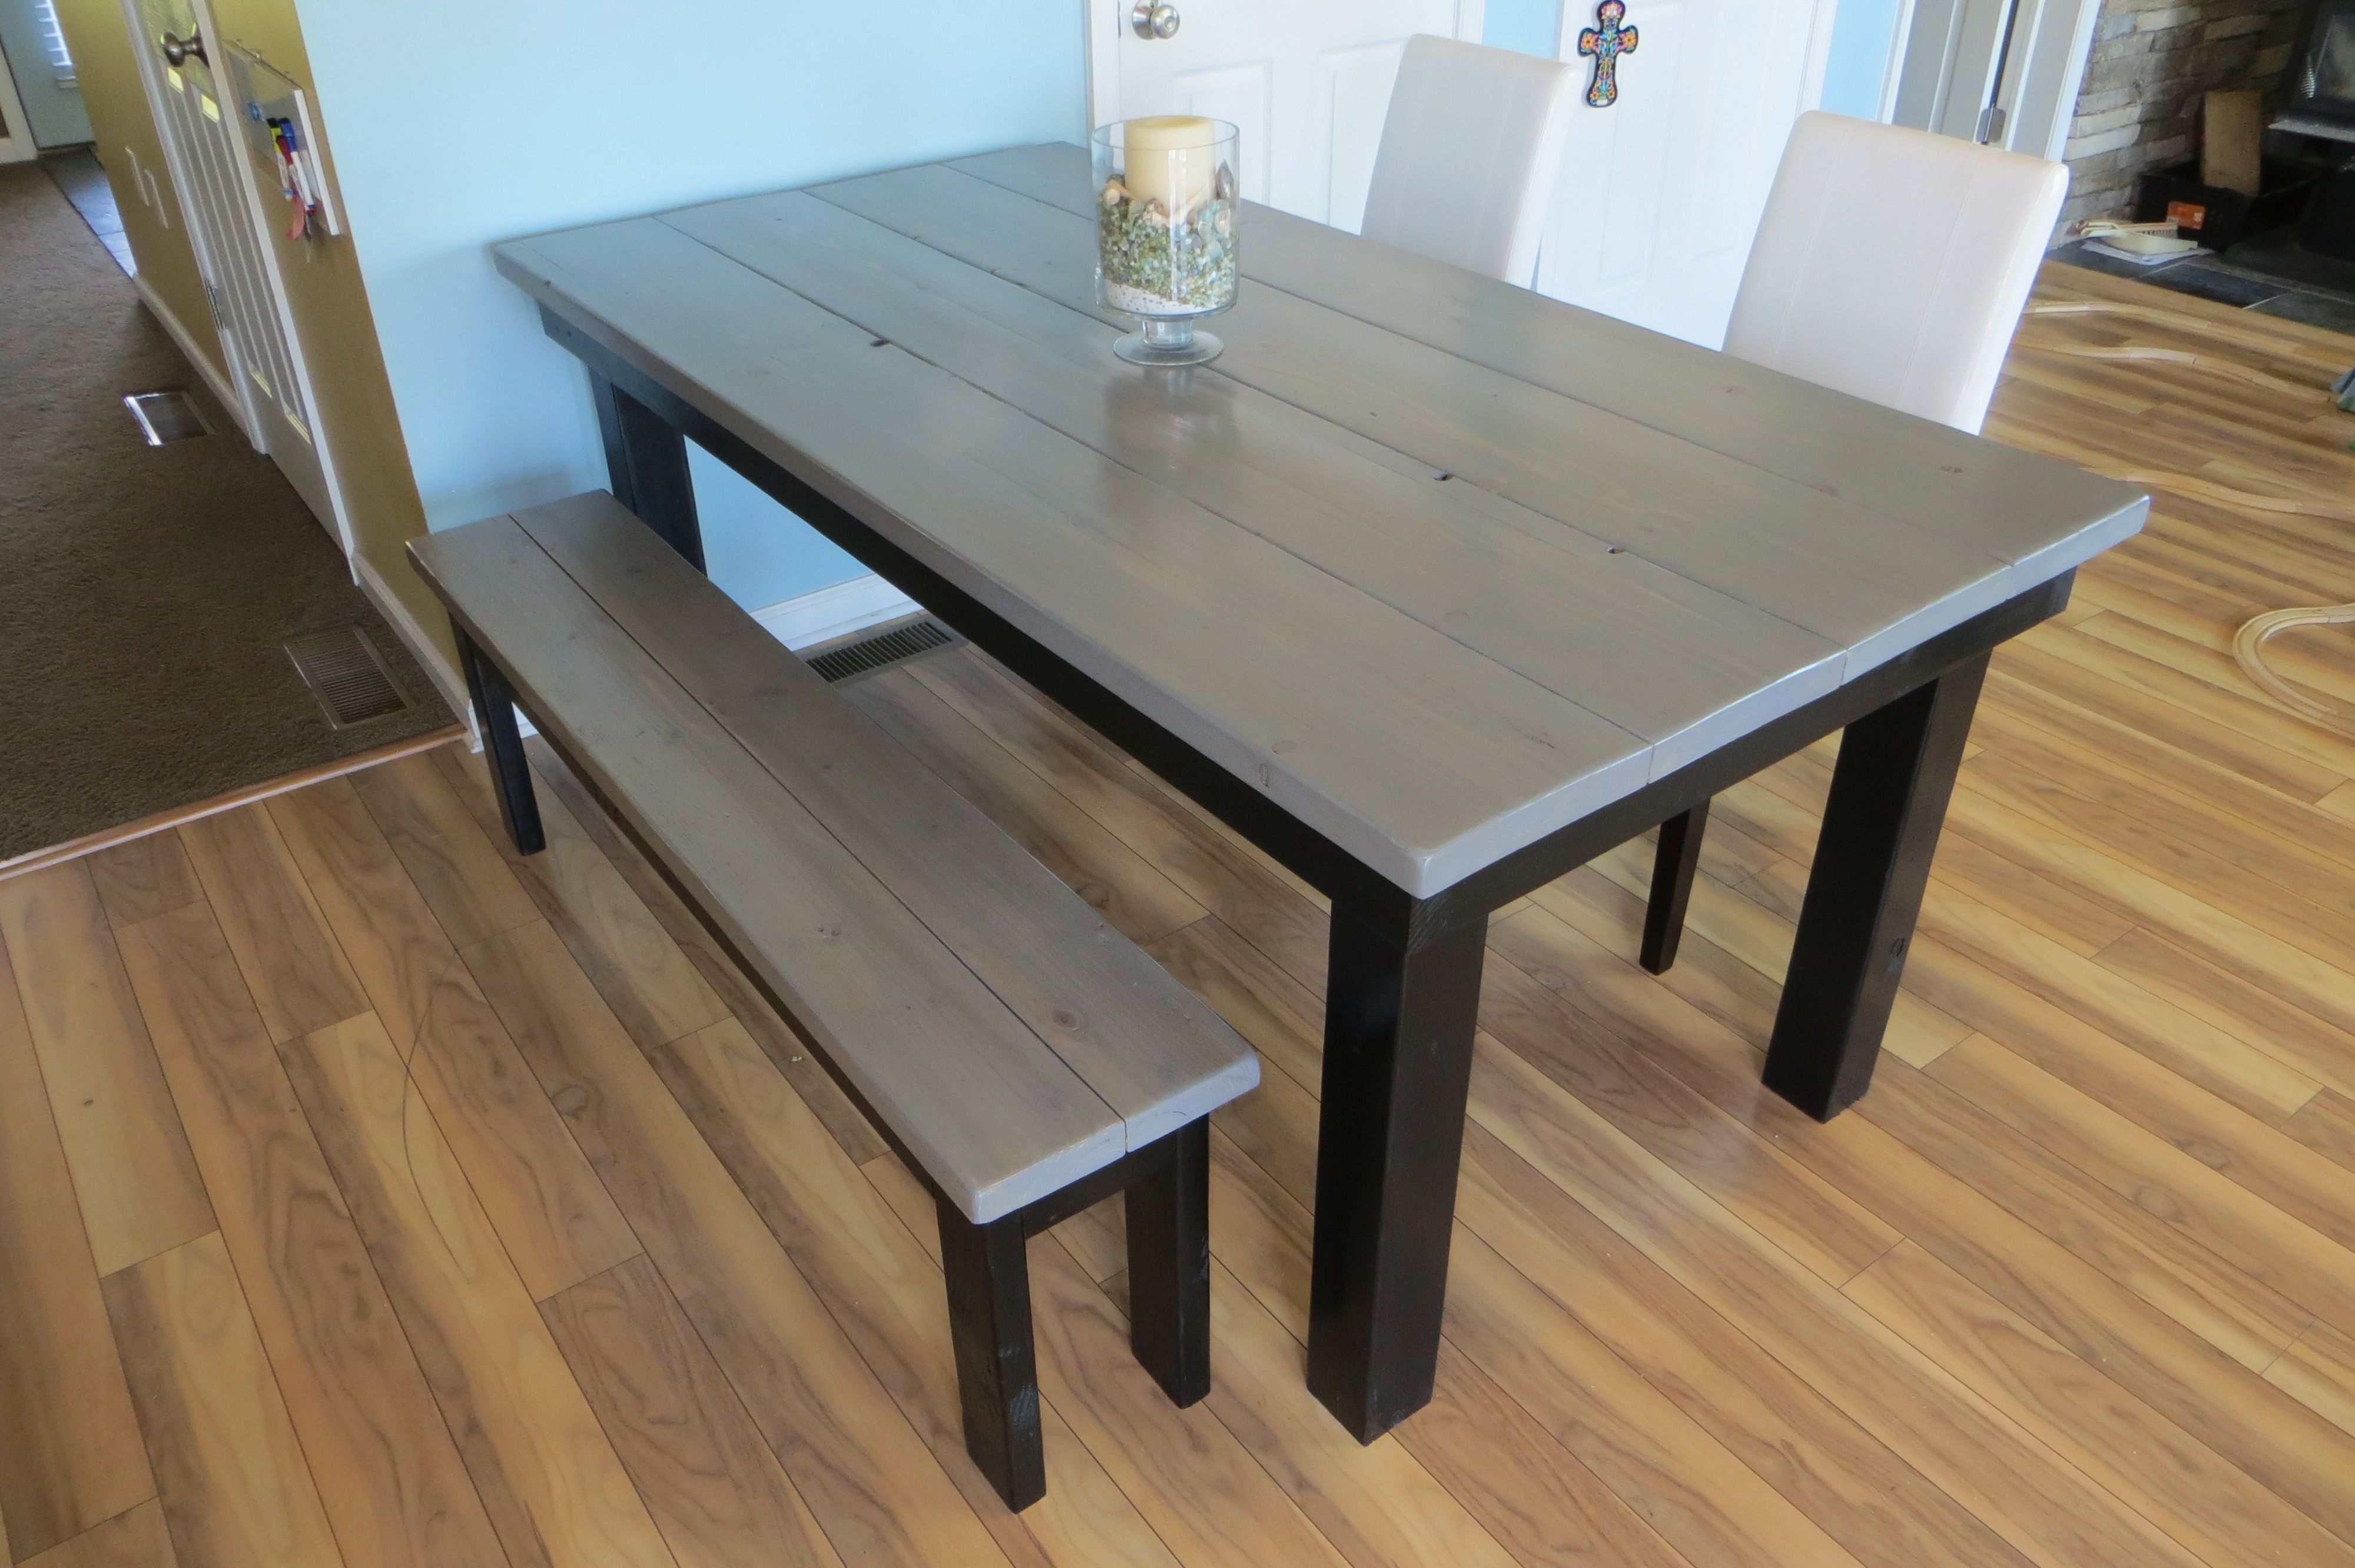 Rustic farm dining tables - Custom Made Rustic Farmhouse Dining Tables